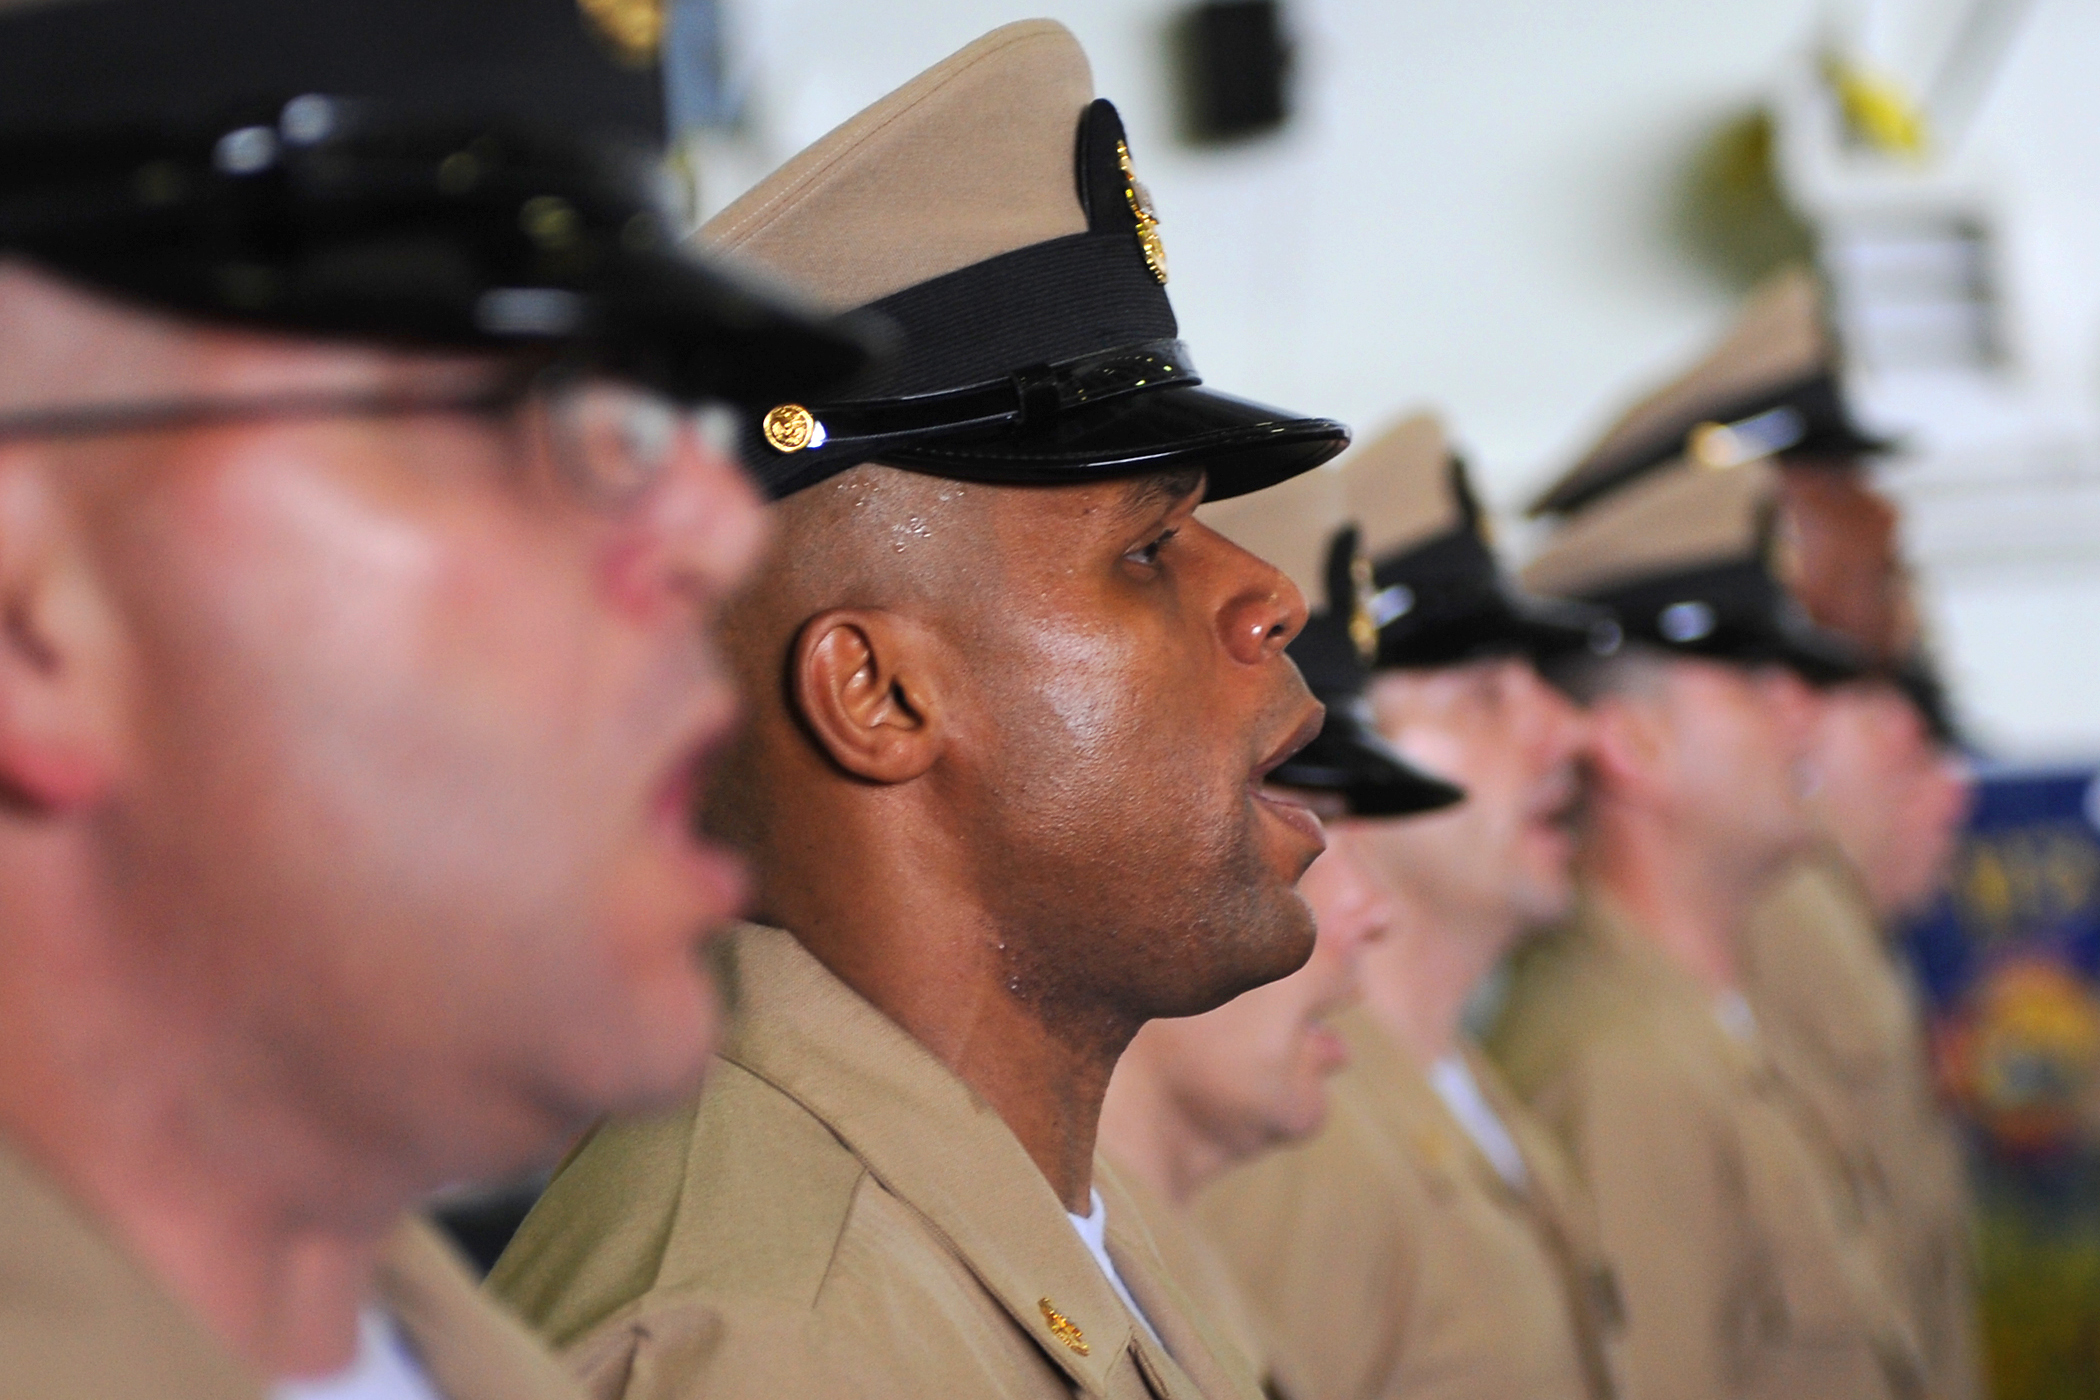 naval officer essay Navy reserve officers' training corps the navy reserve officers' training corps program offers tuition and other financial benefits at more than 60 of the country's leading colleges and universities.